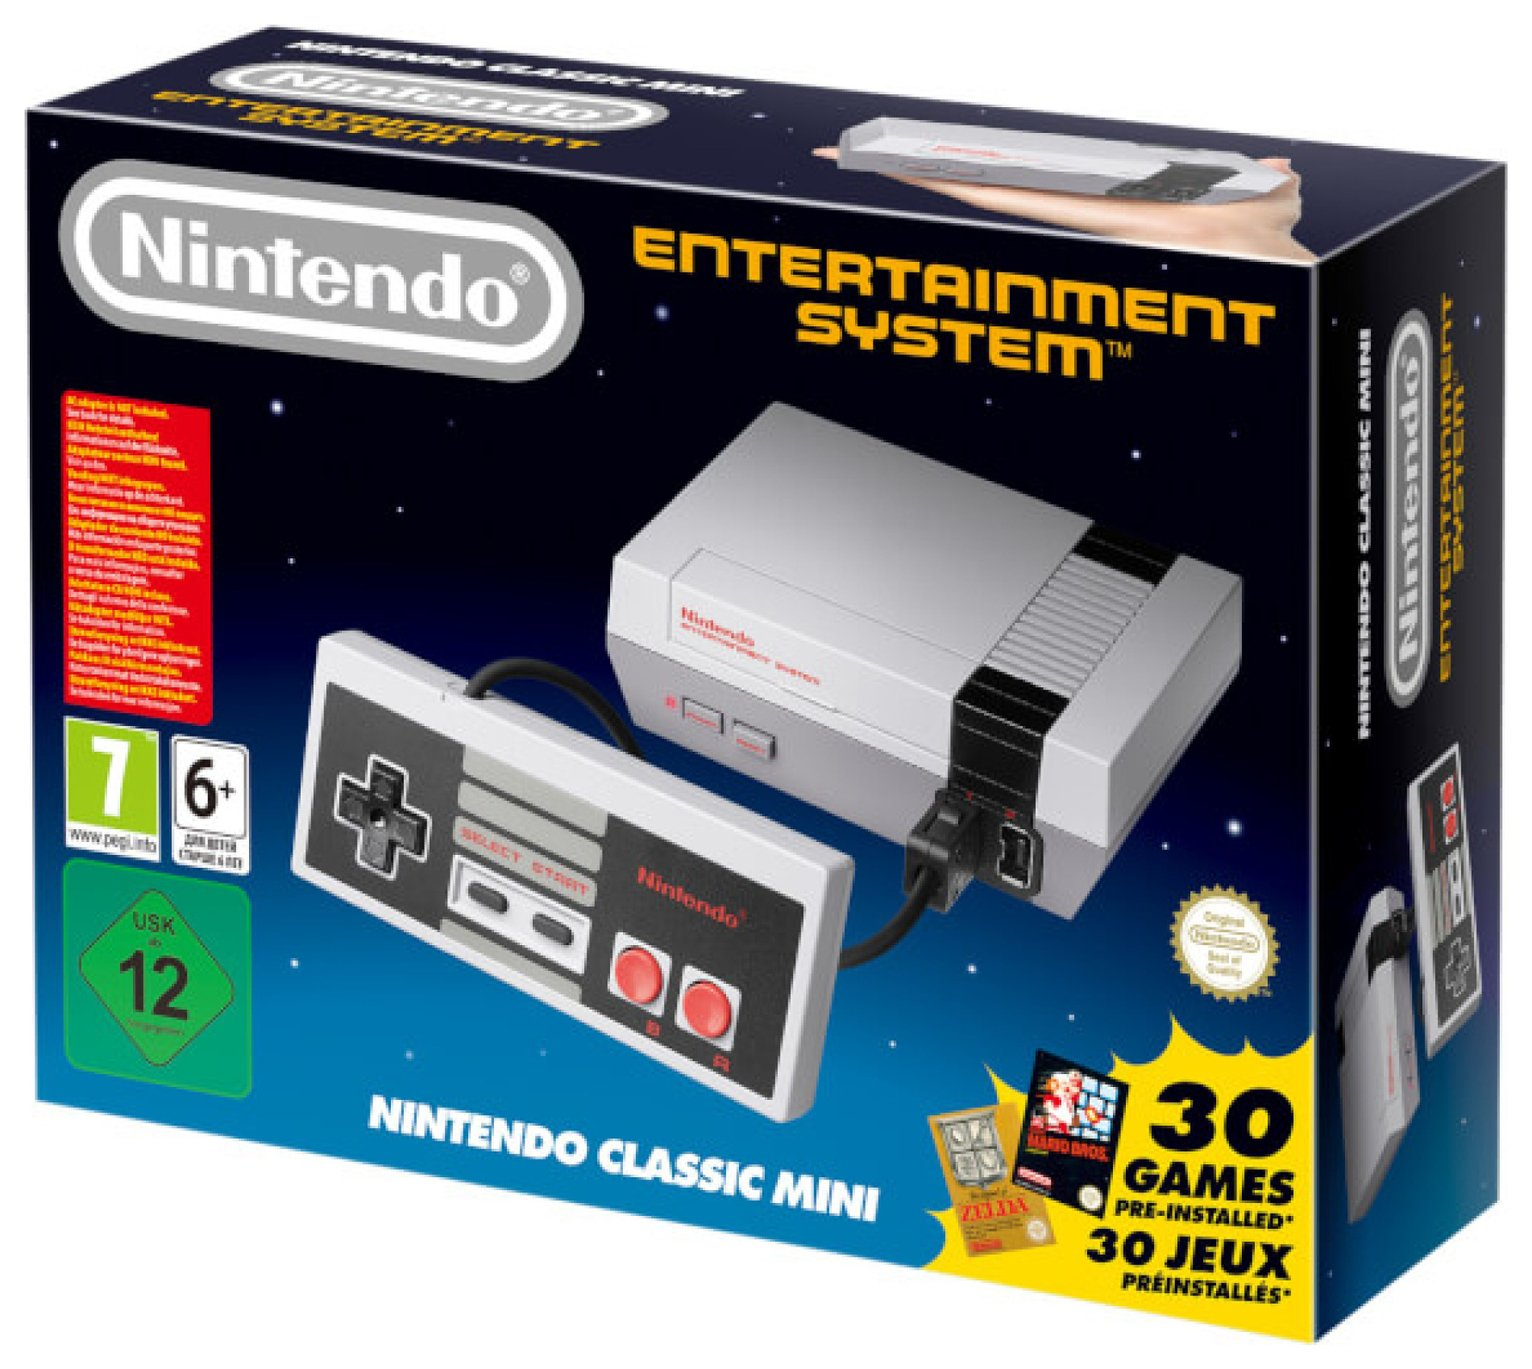 Packed full of classics, the Nintendo Classic Mini NES this will keep any gaming lover occupied for hours at a time!